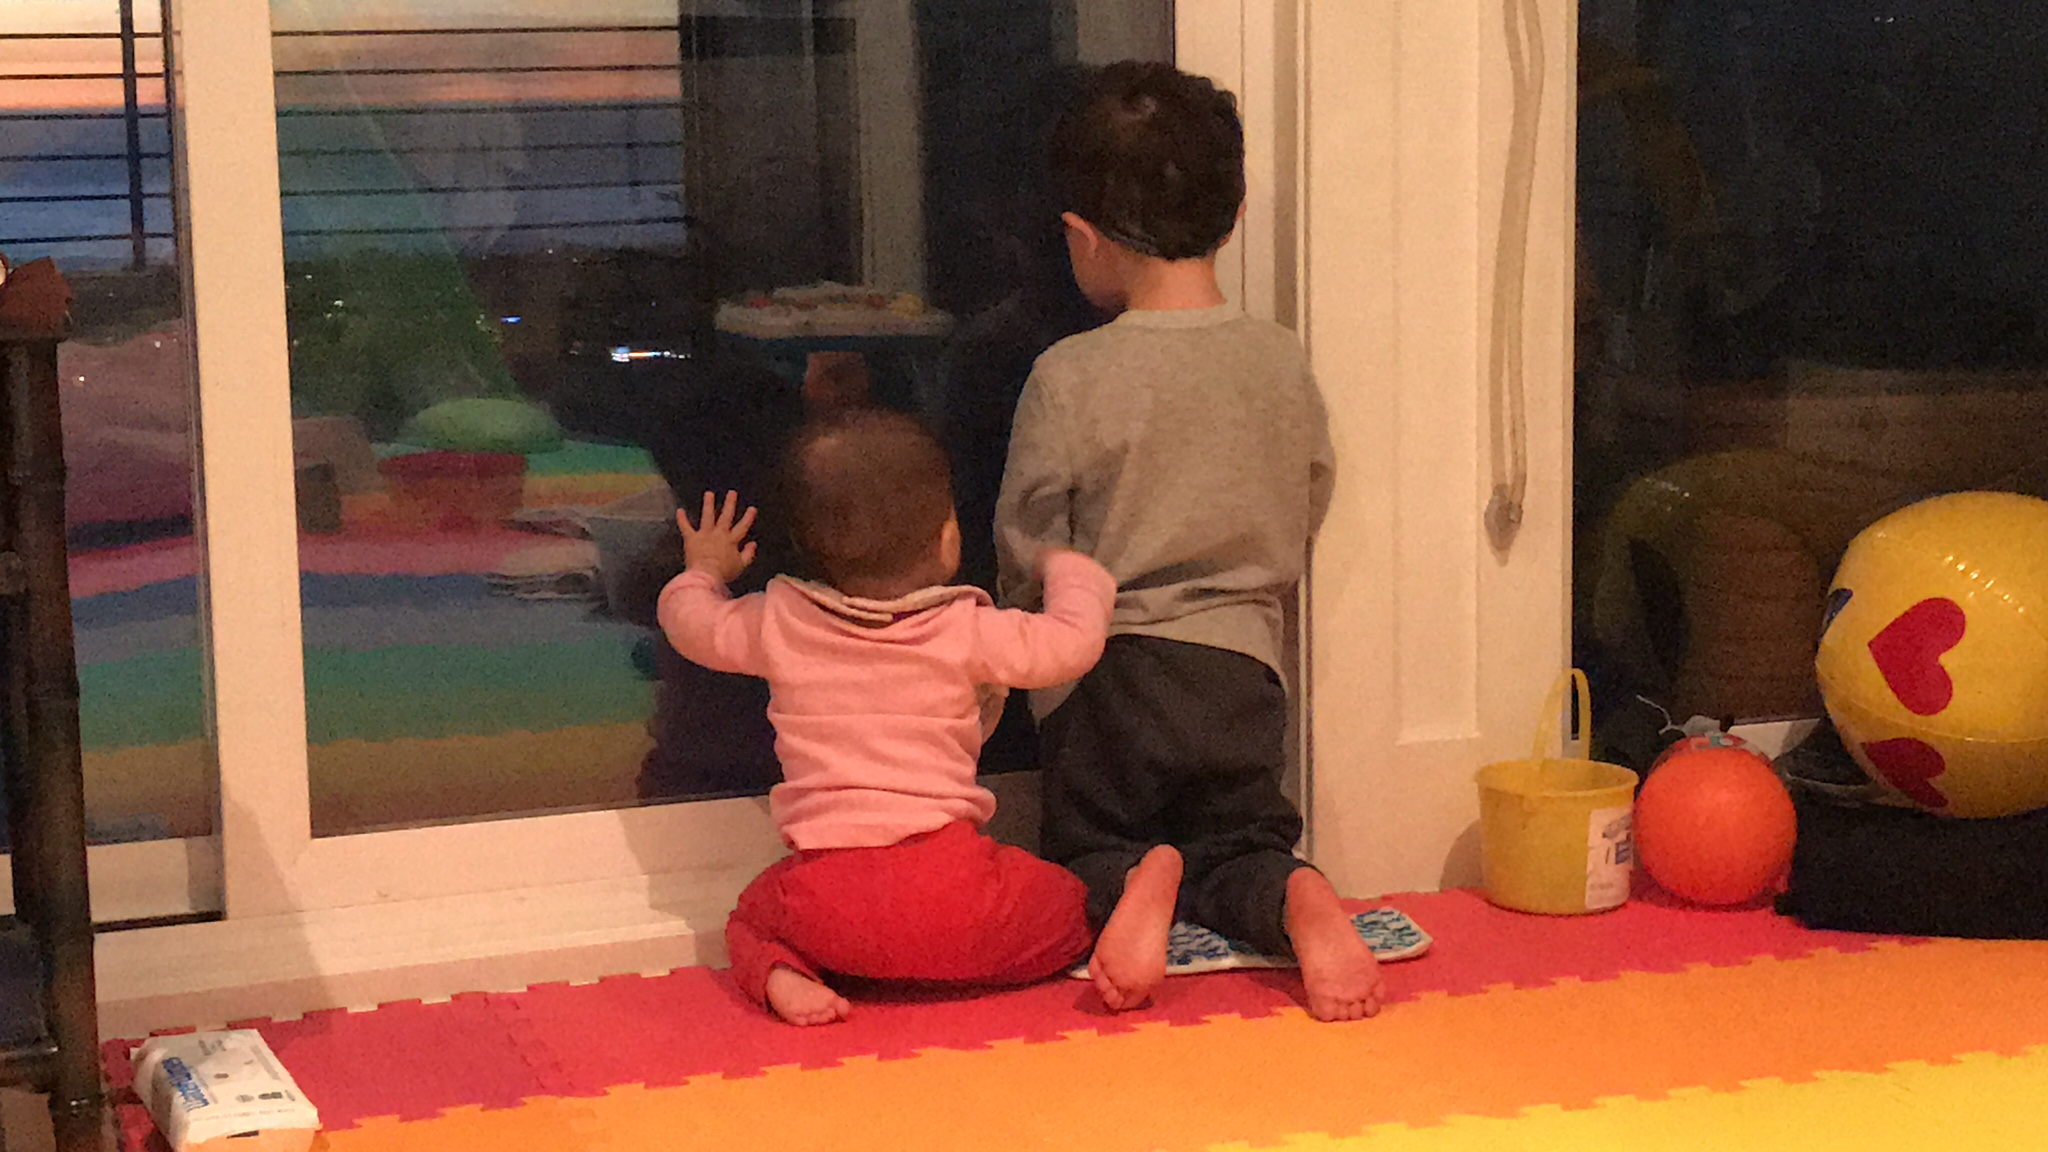 The benefits of homeschooling - sibling play!